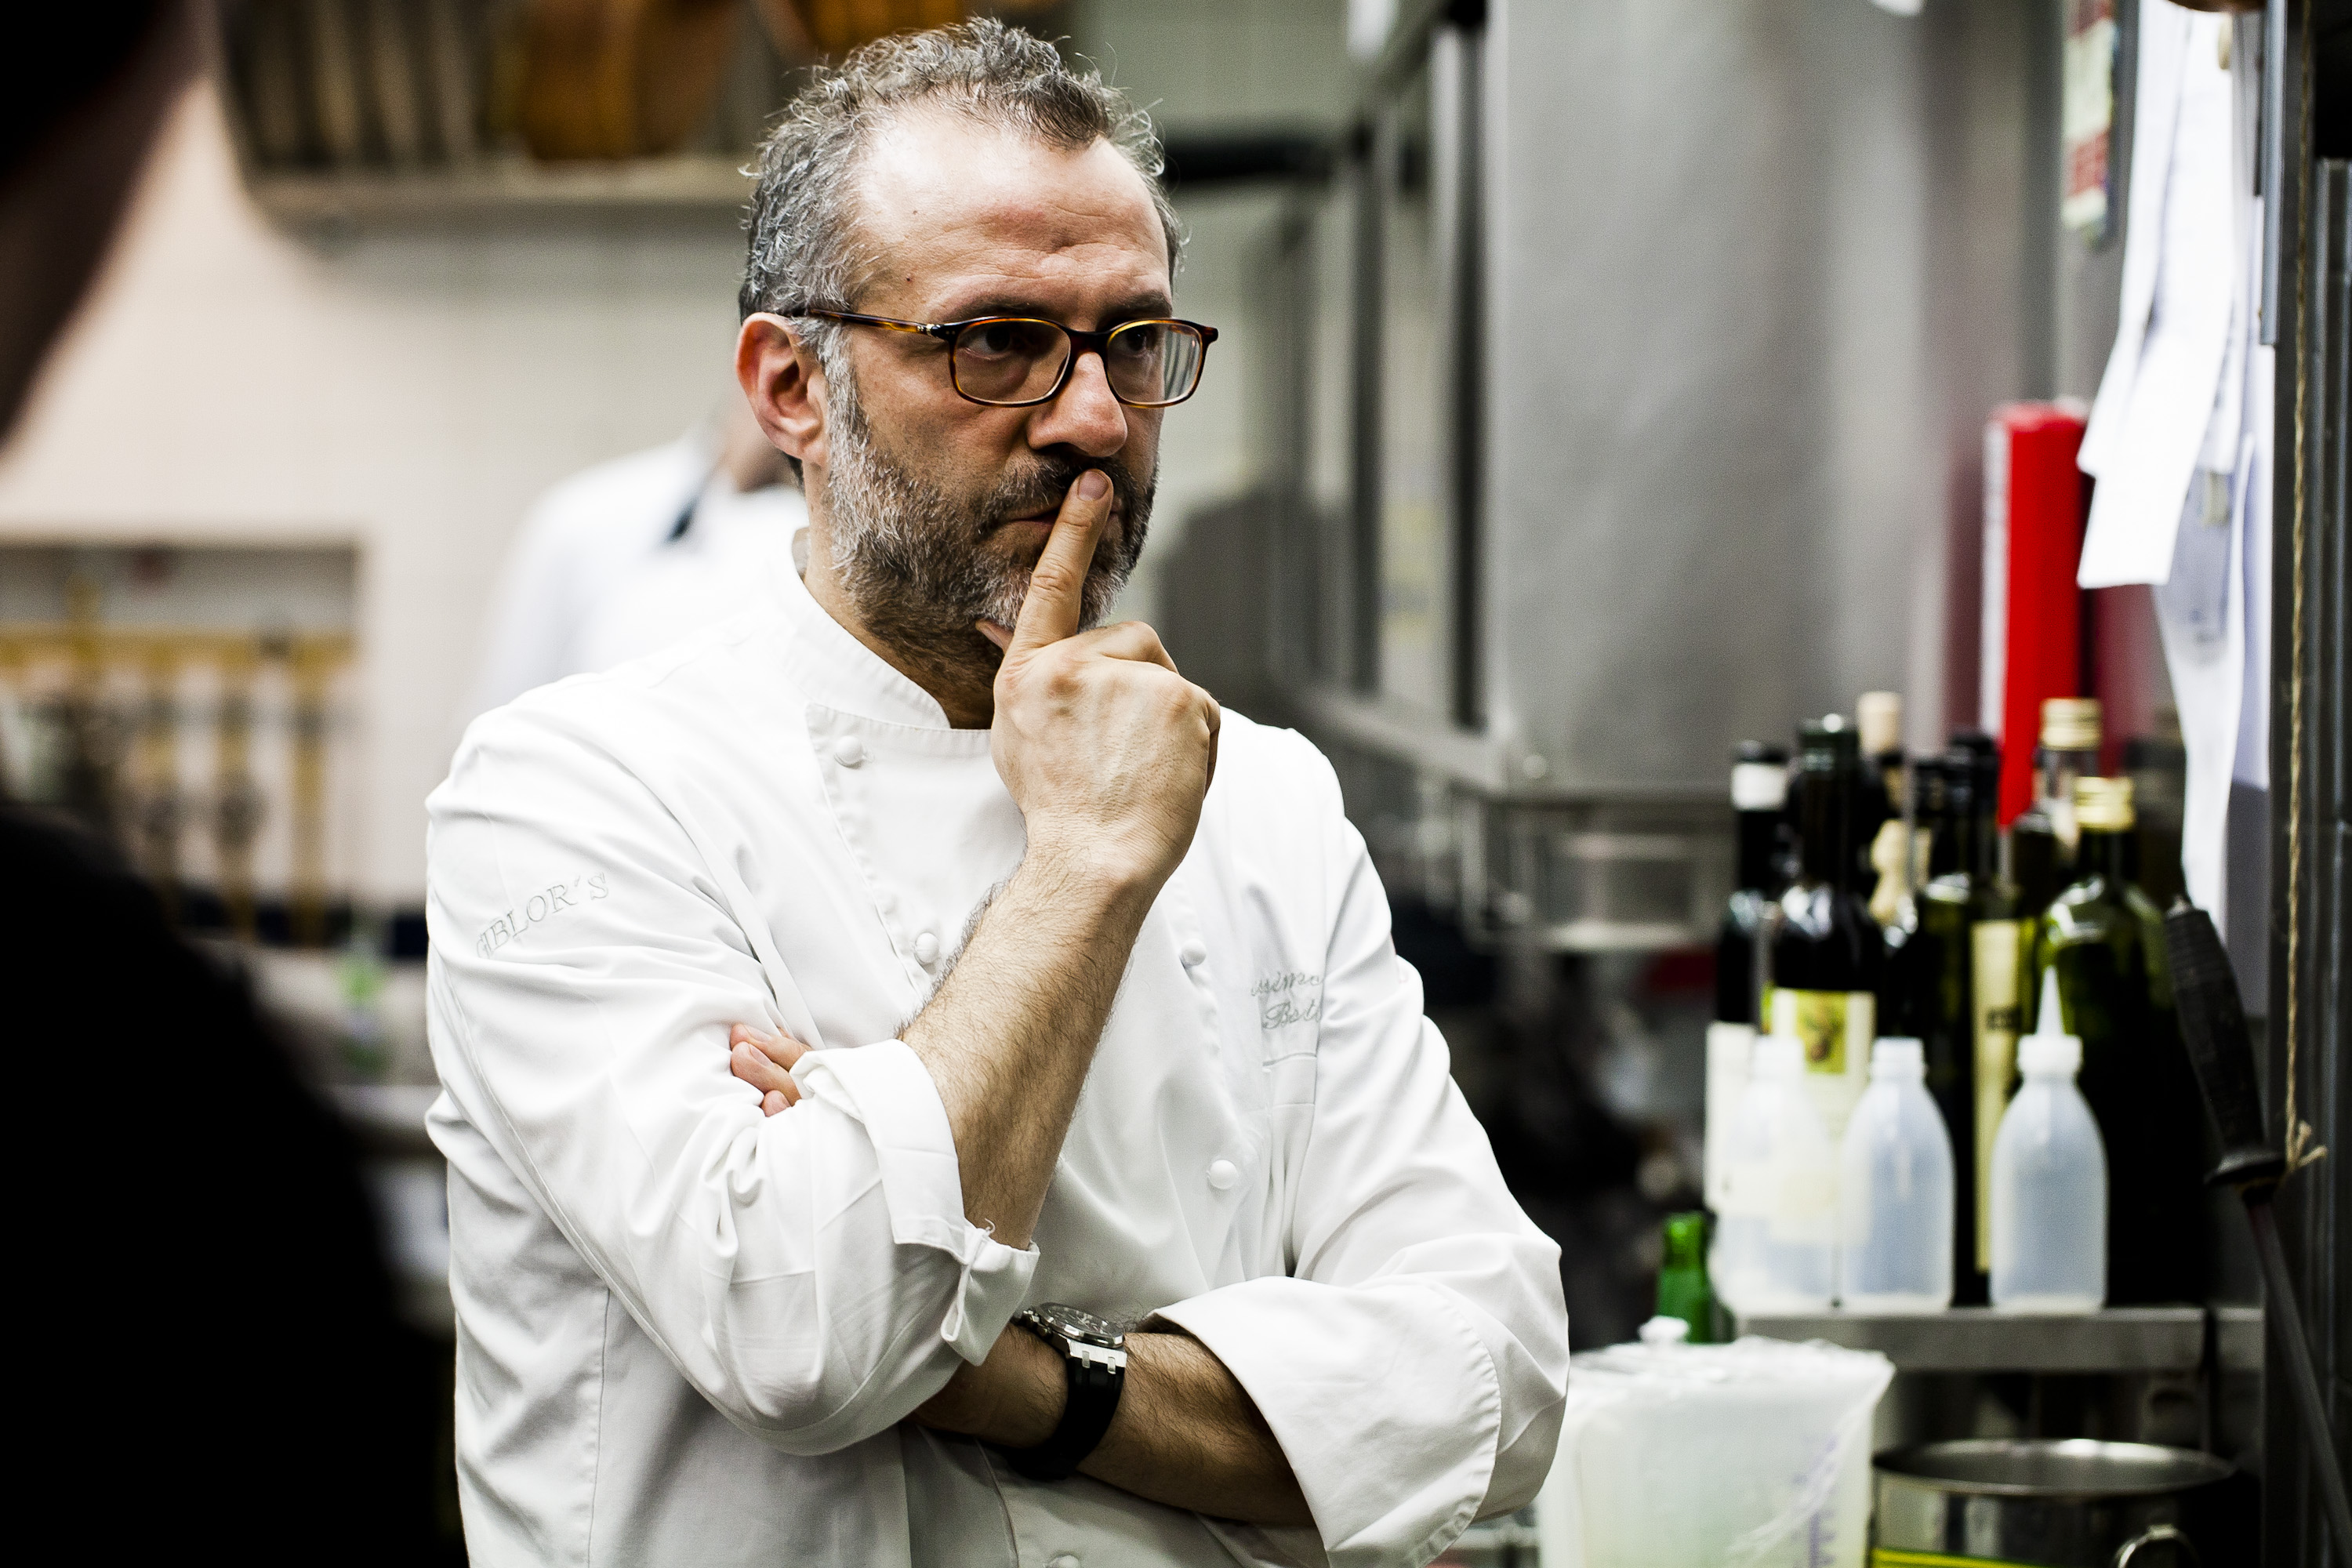 Kitchen backstage; International Gourmet Festival 2012; Tribute to Claudia 2012; Day 11 - January 22nd; Massimo Bottura